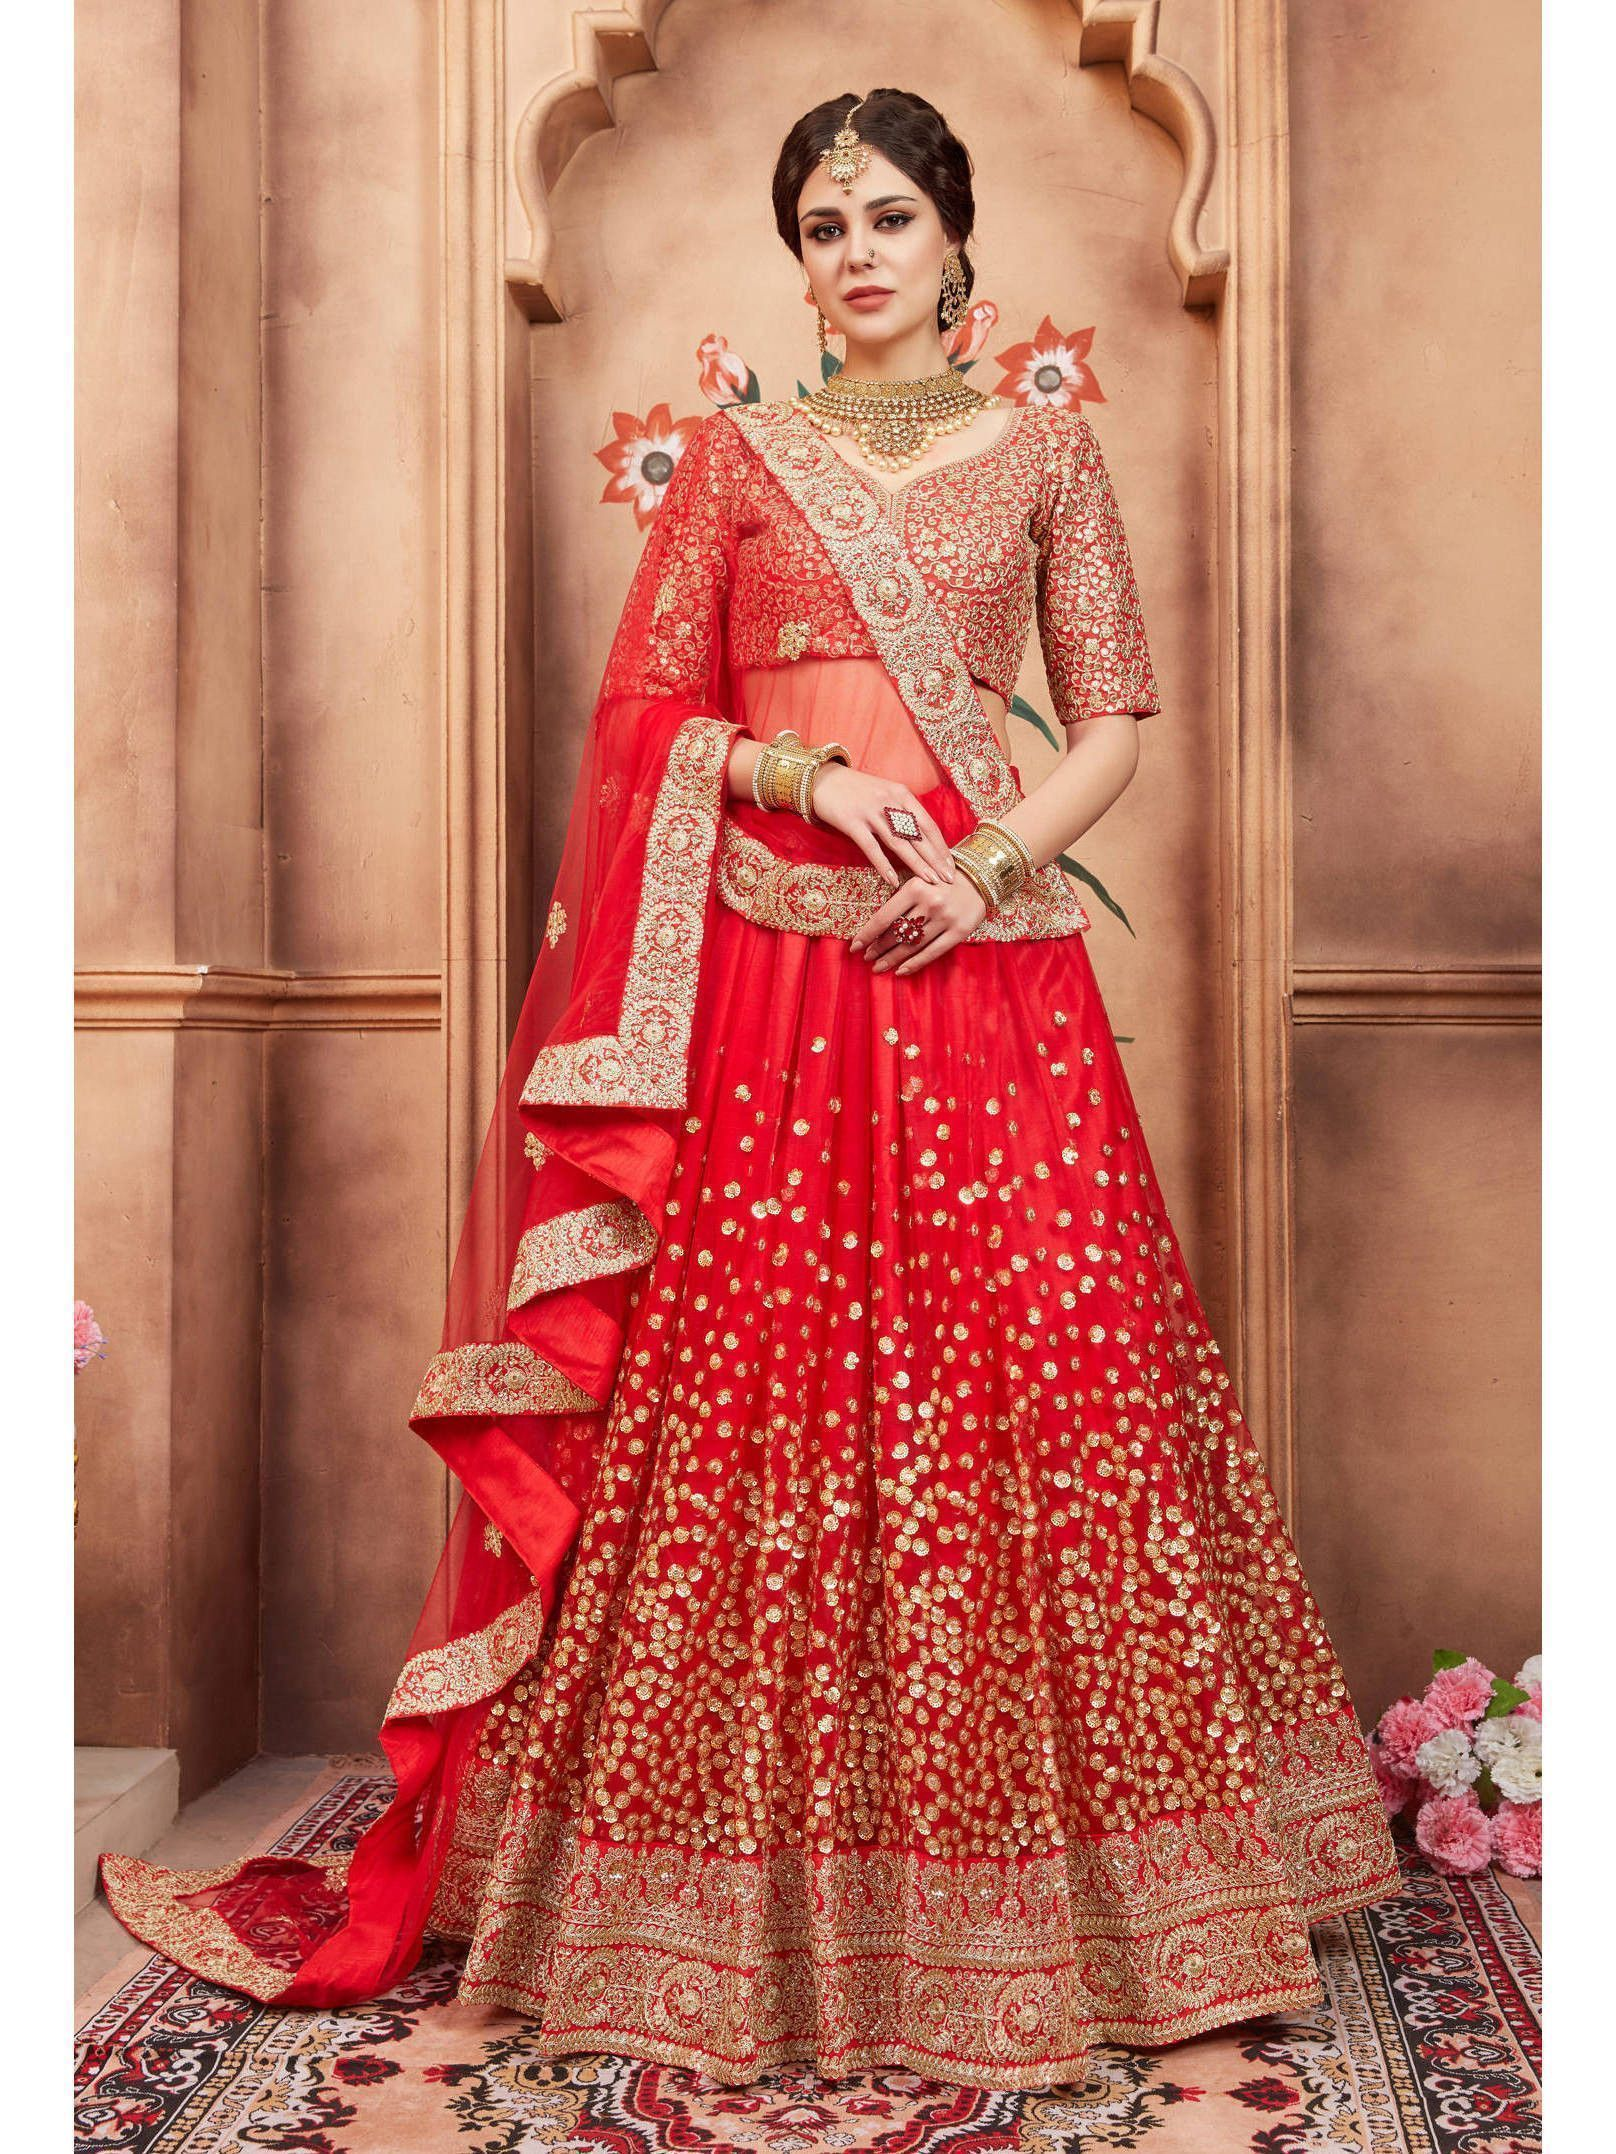 Red Sequins Bridal Lehenga Choli